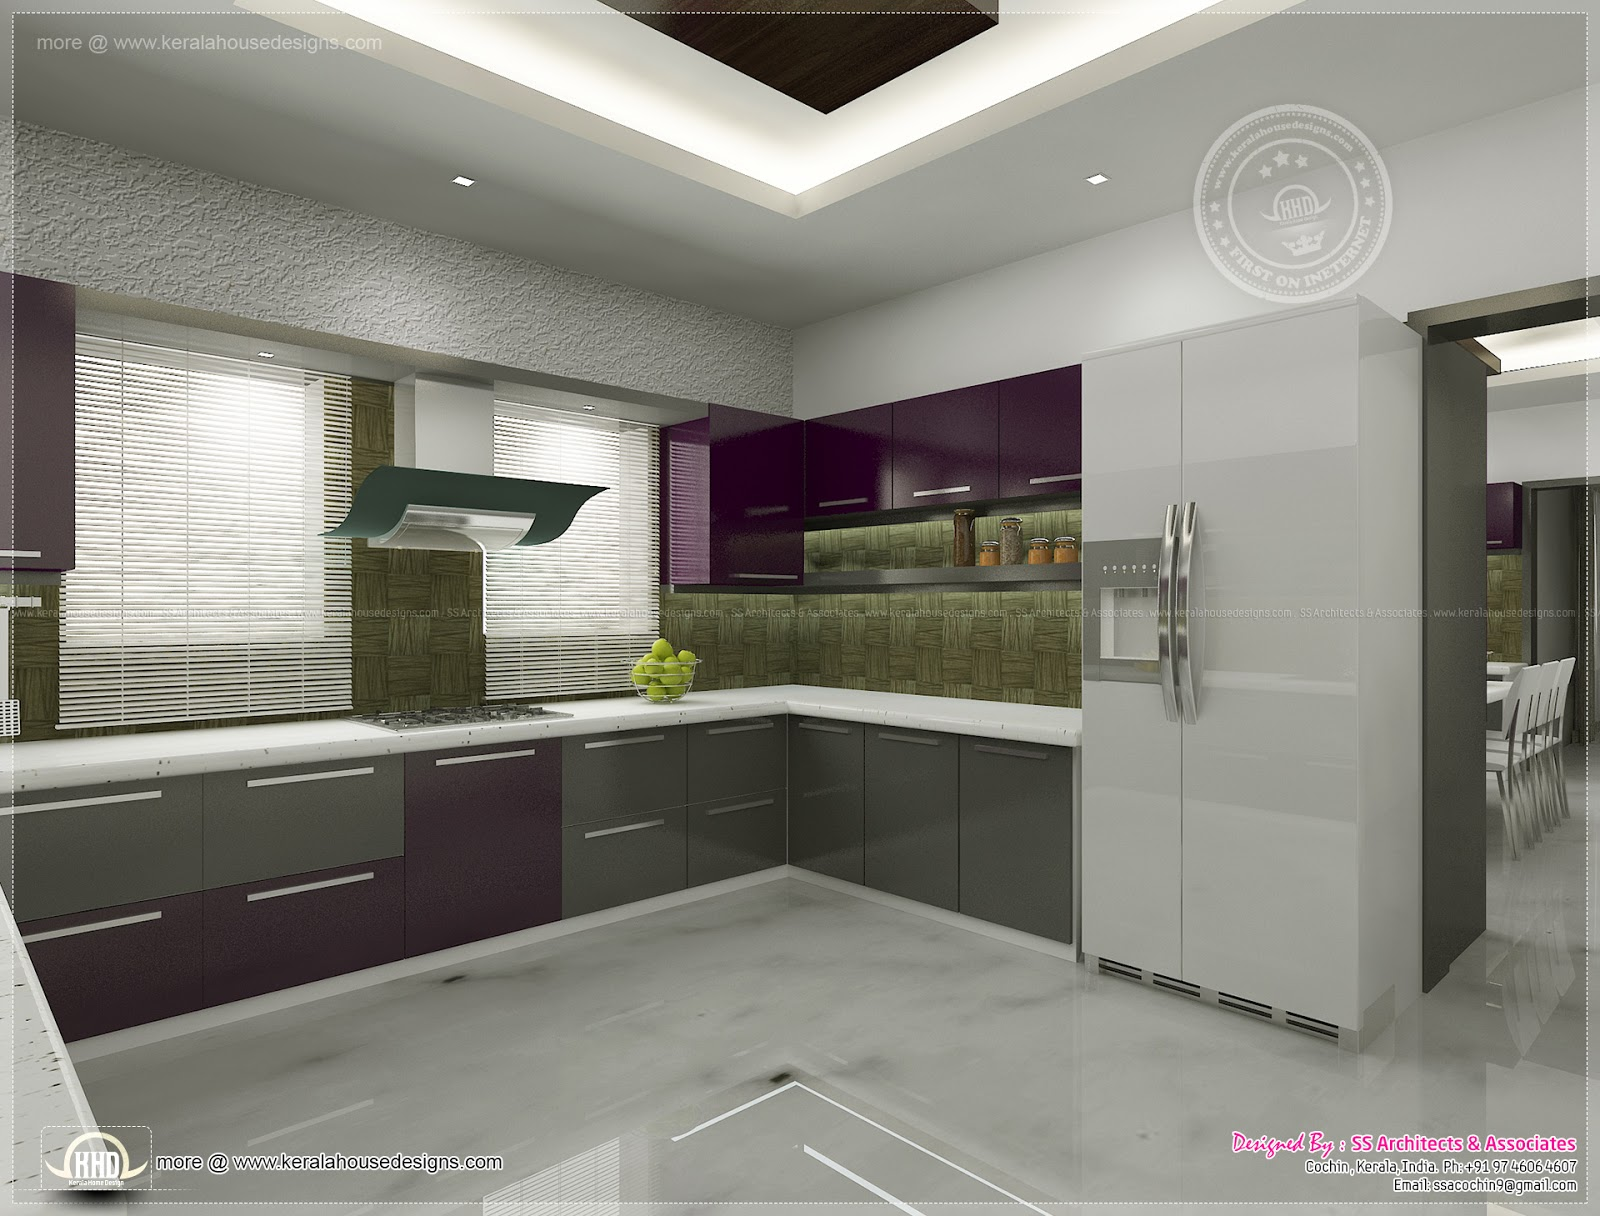 Kitchen interior views by ss architects cochin kerala for Interior design of kitchen room in india